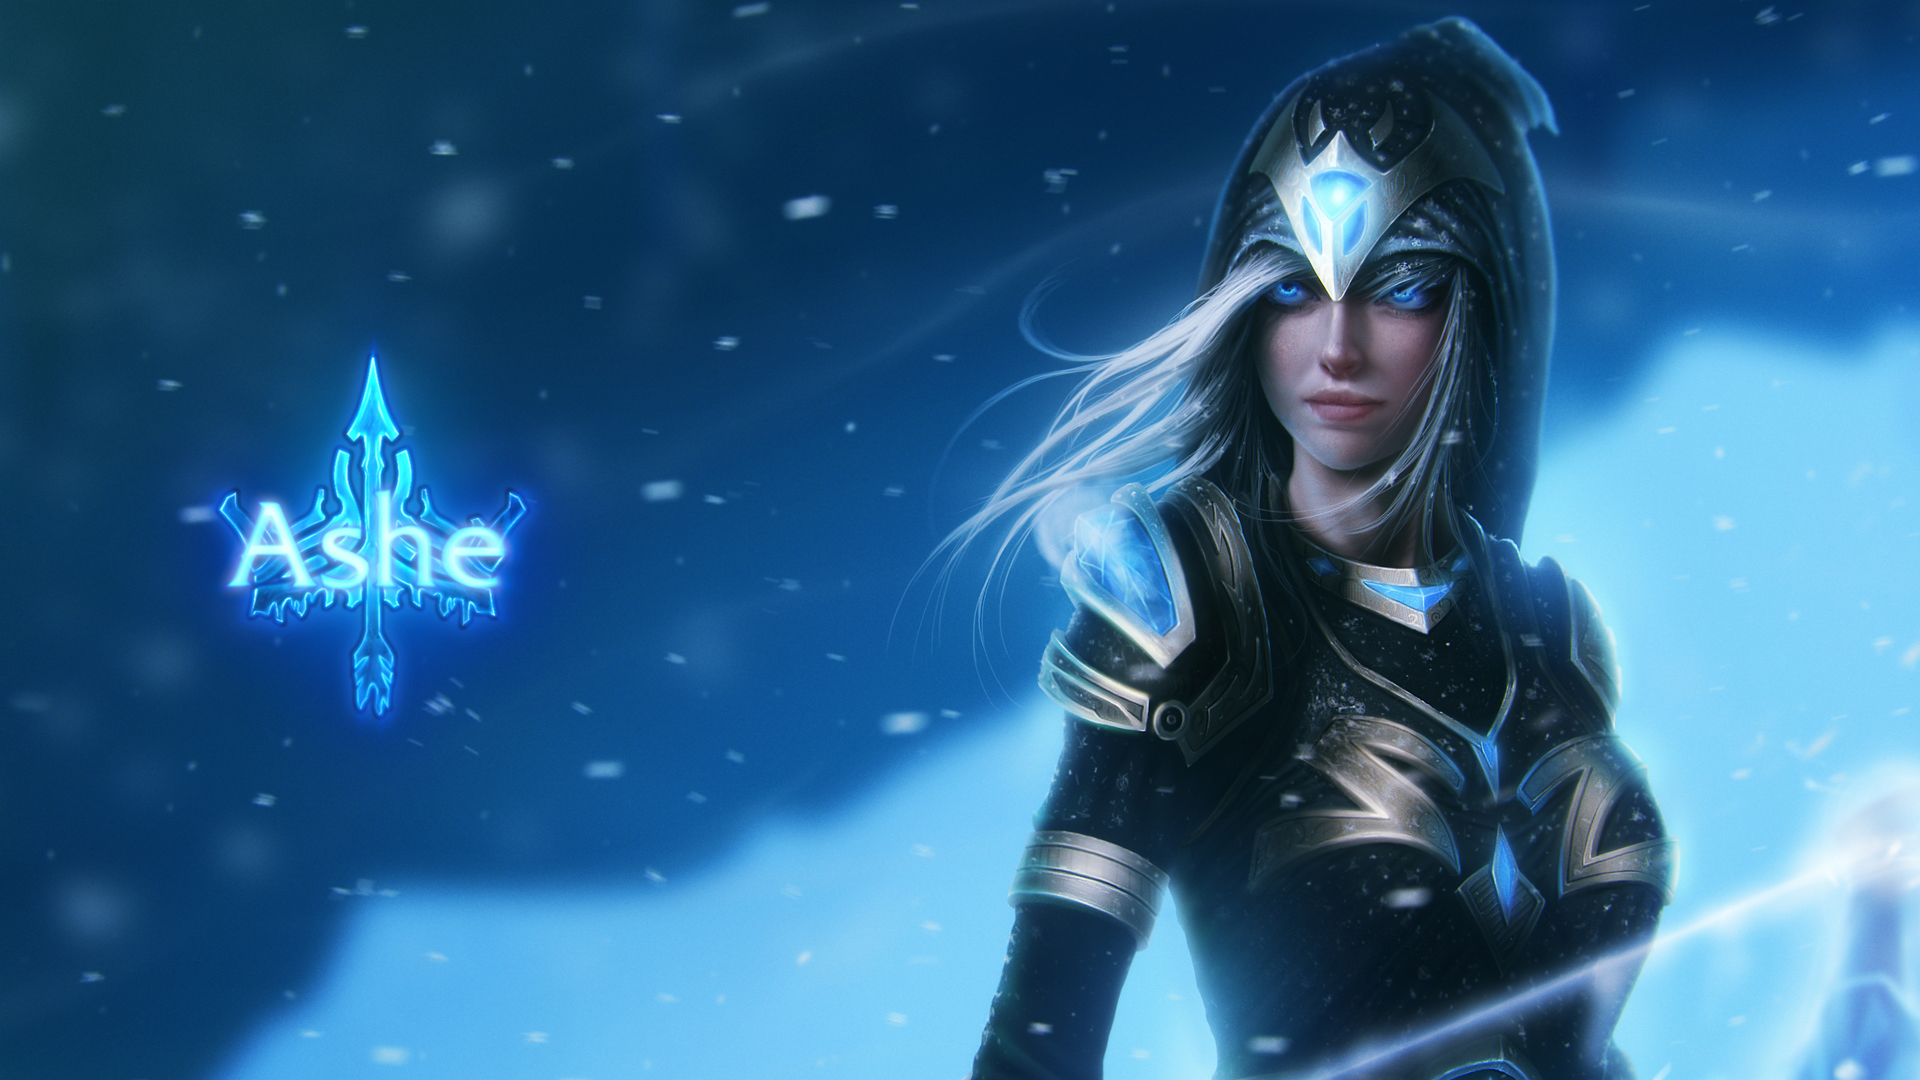 Ashe - LoLWallpapers